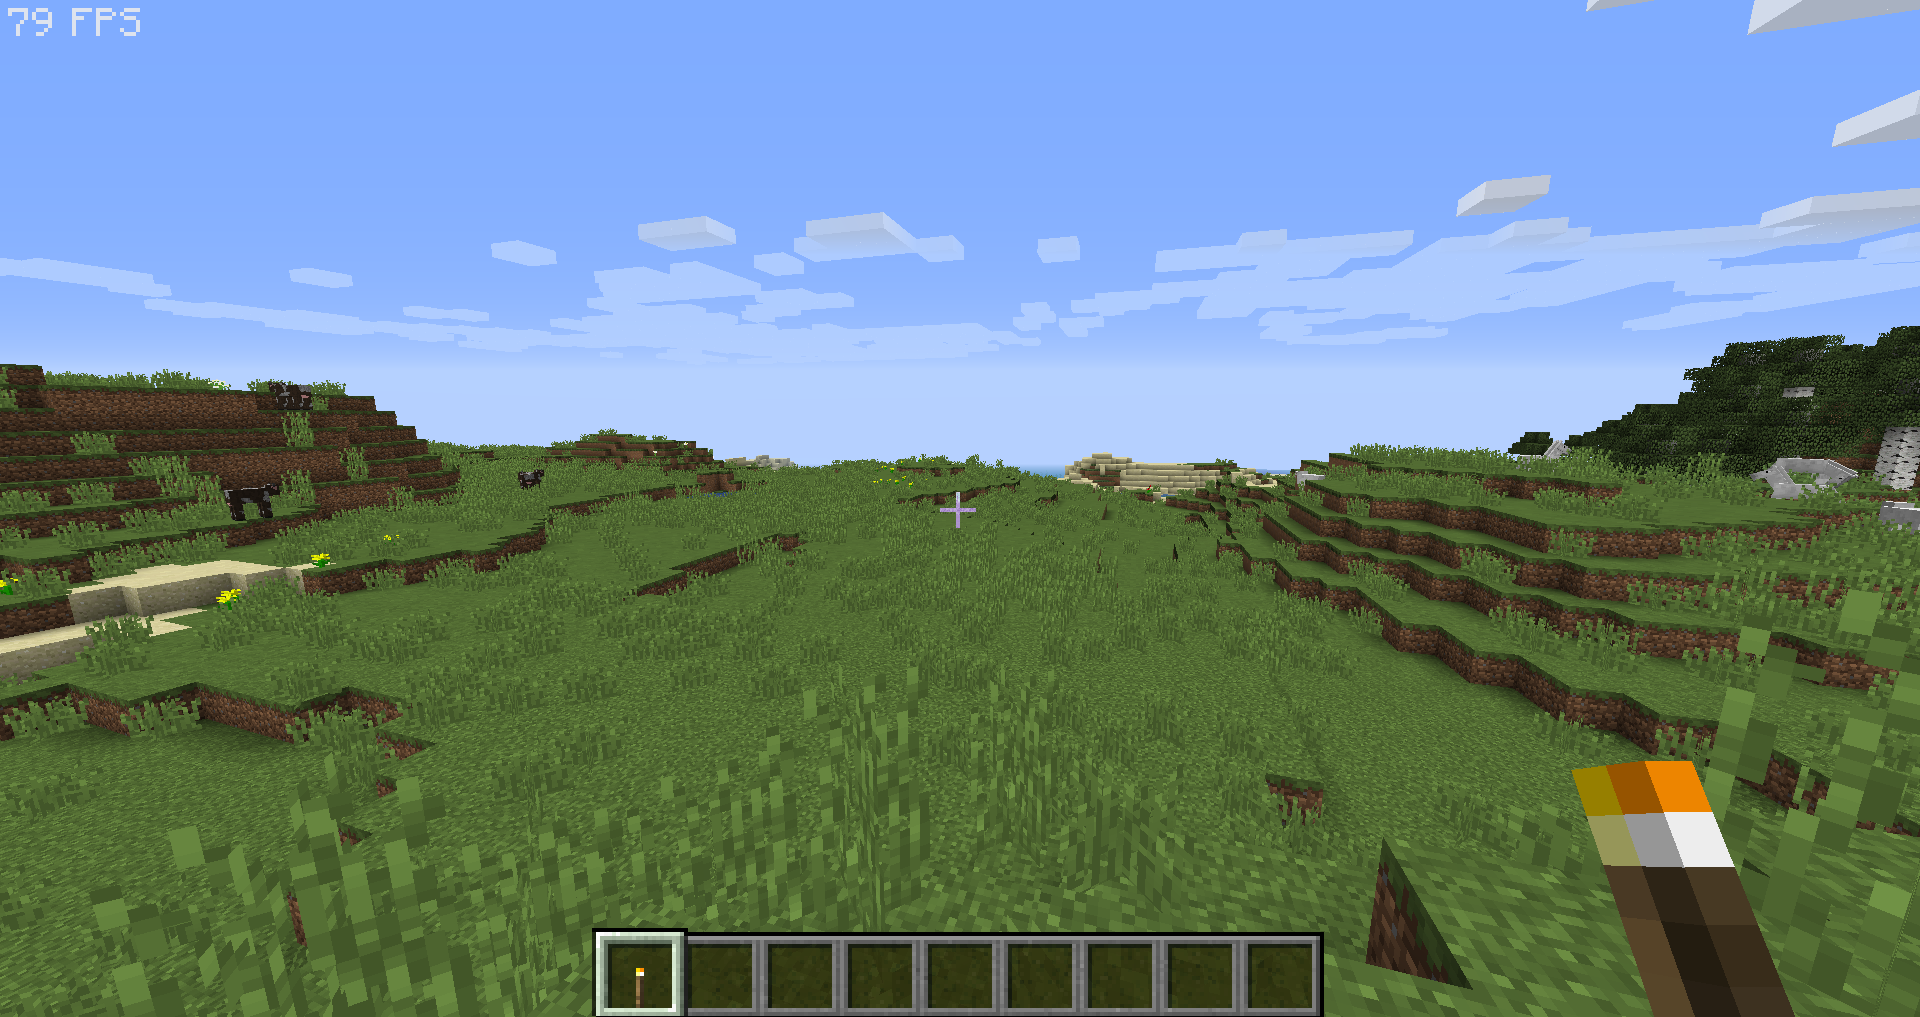 A preview of this mod